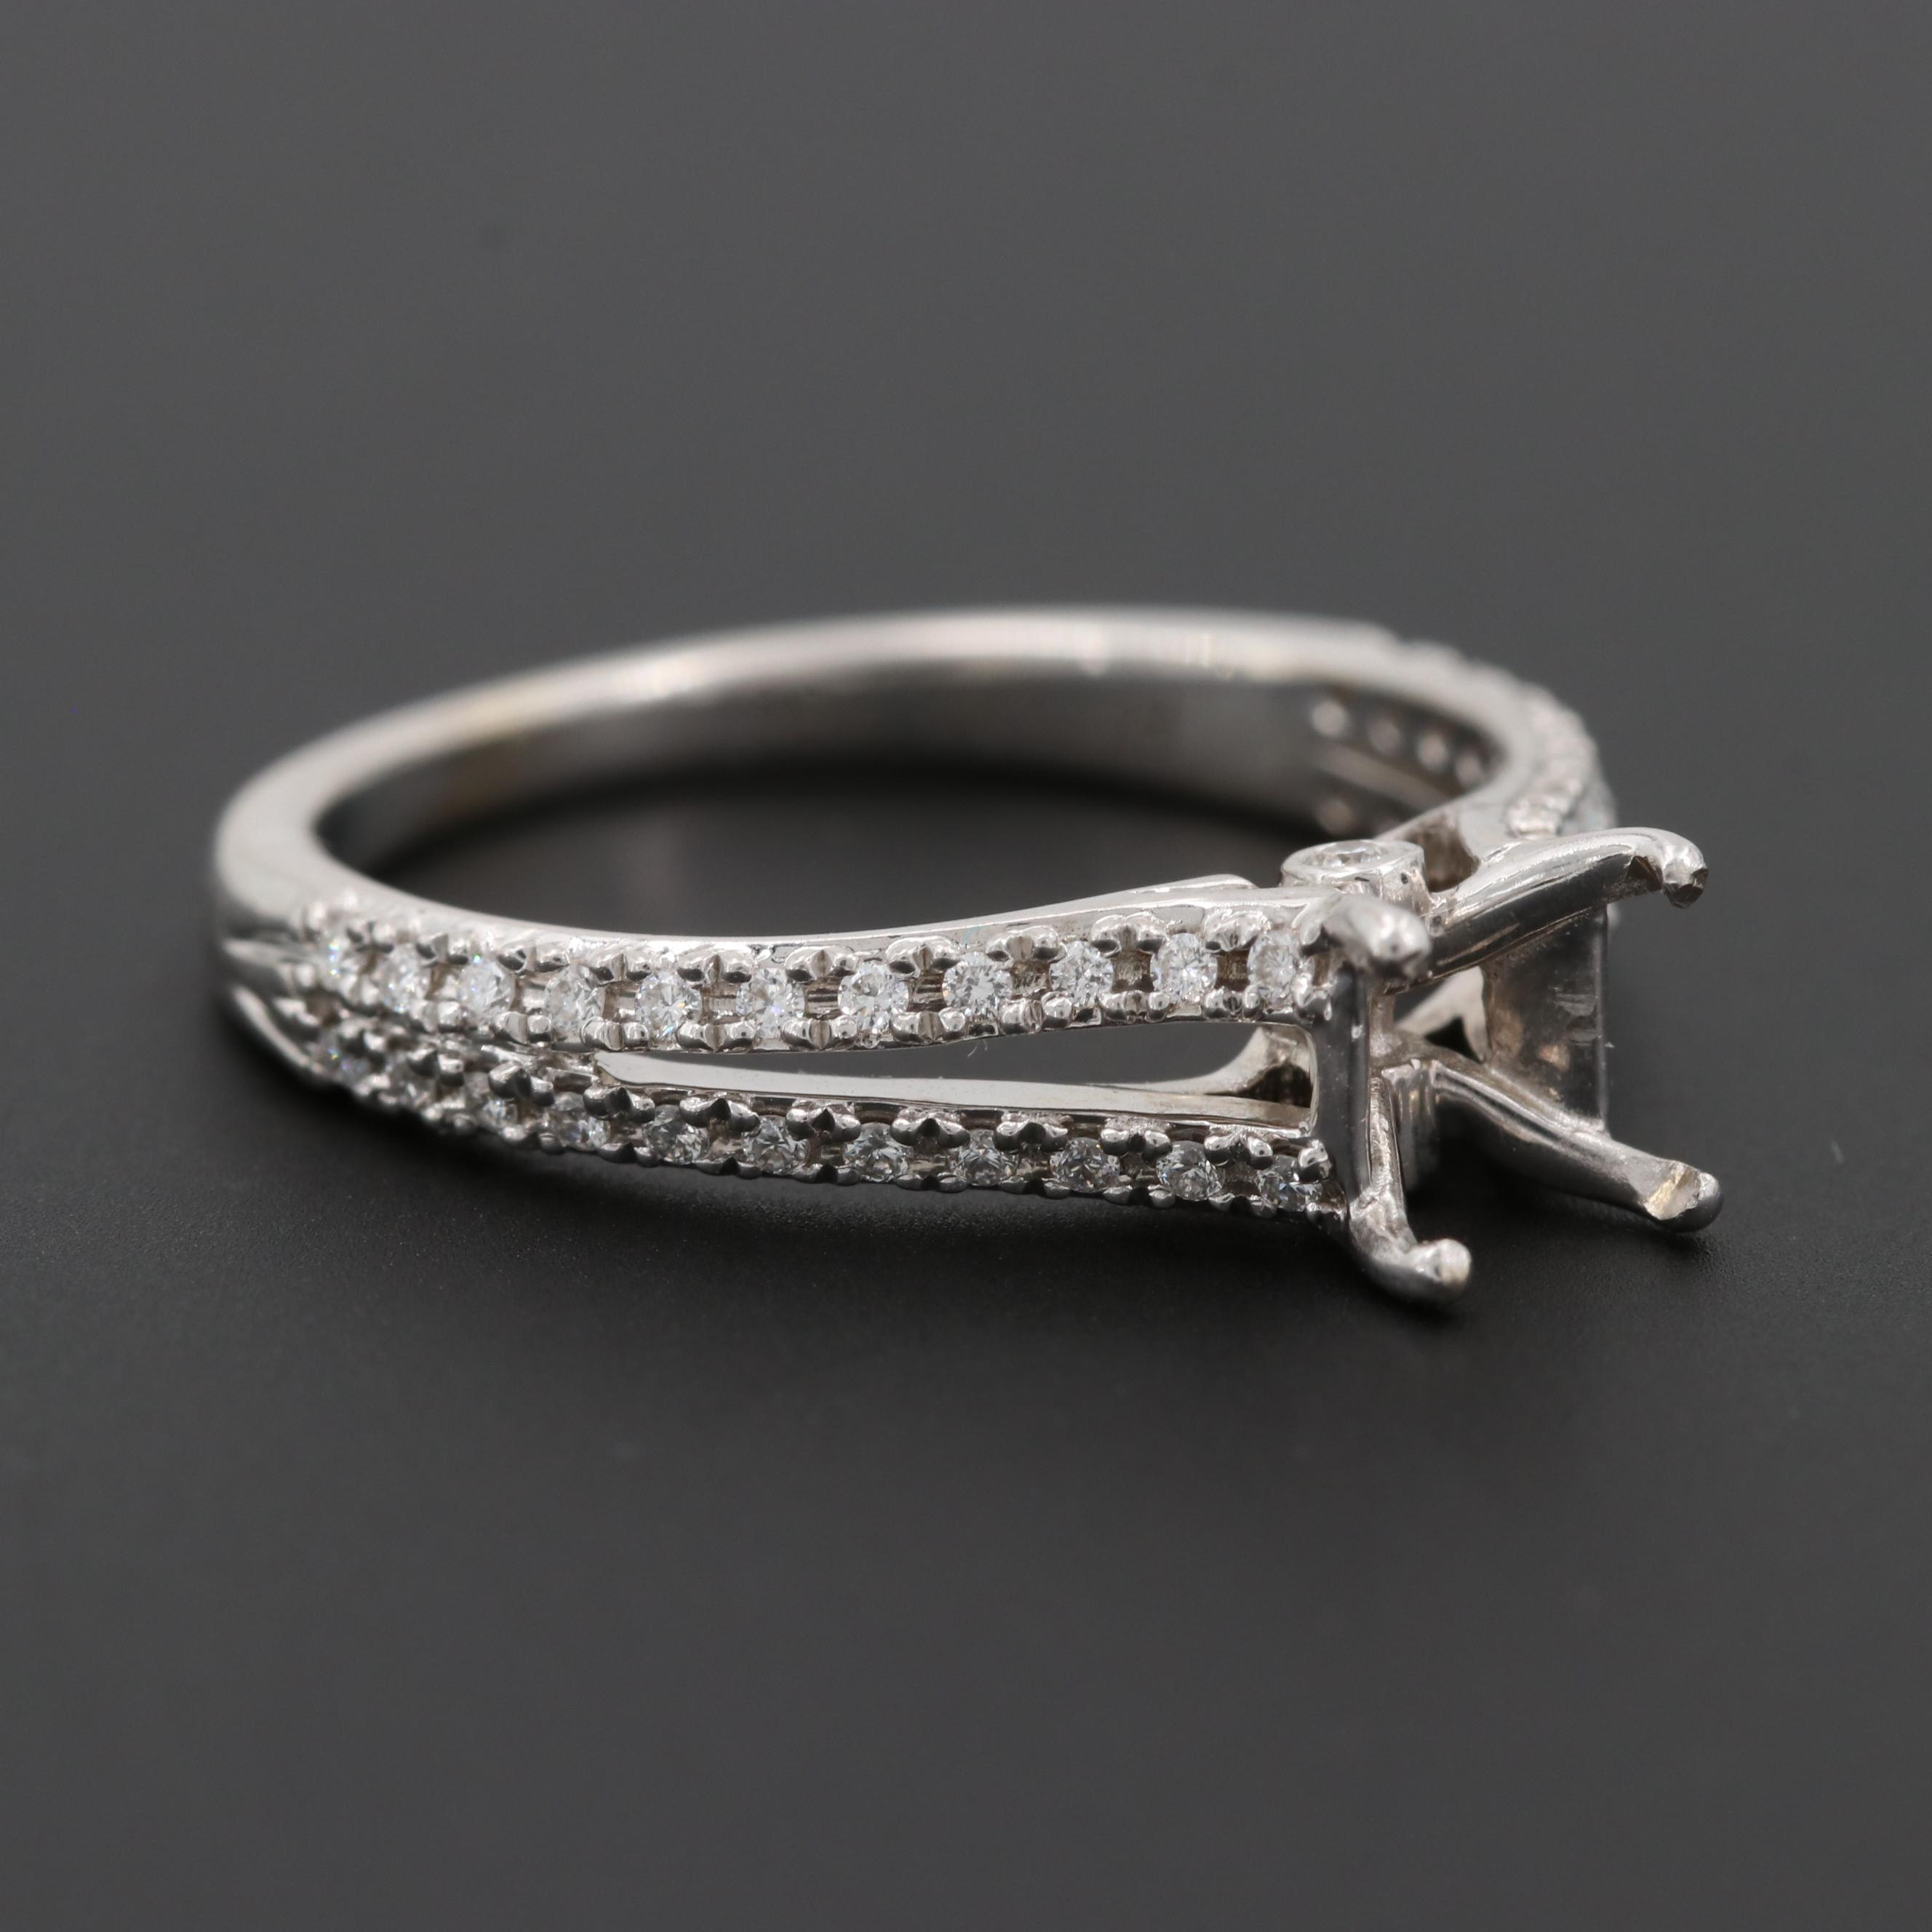 Ritani 18K White Gold Diamond Semi-Mount Ring with Split Shank